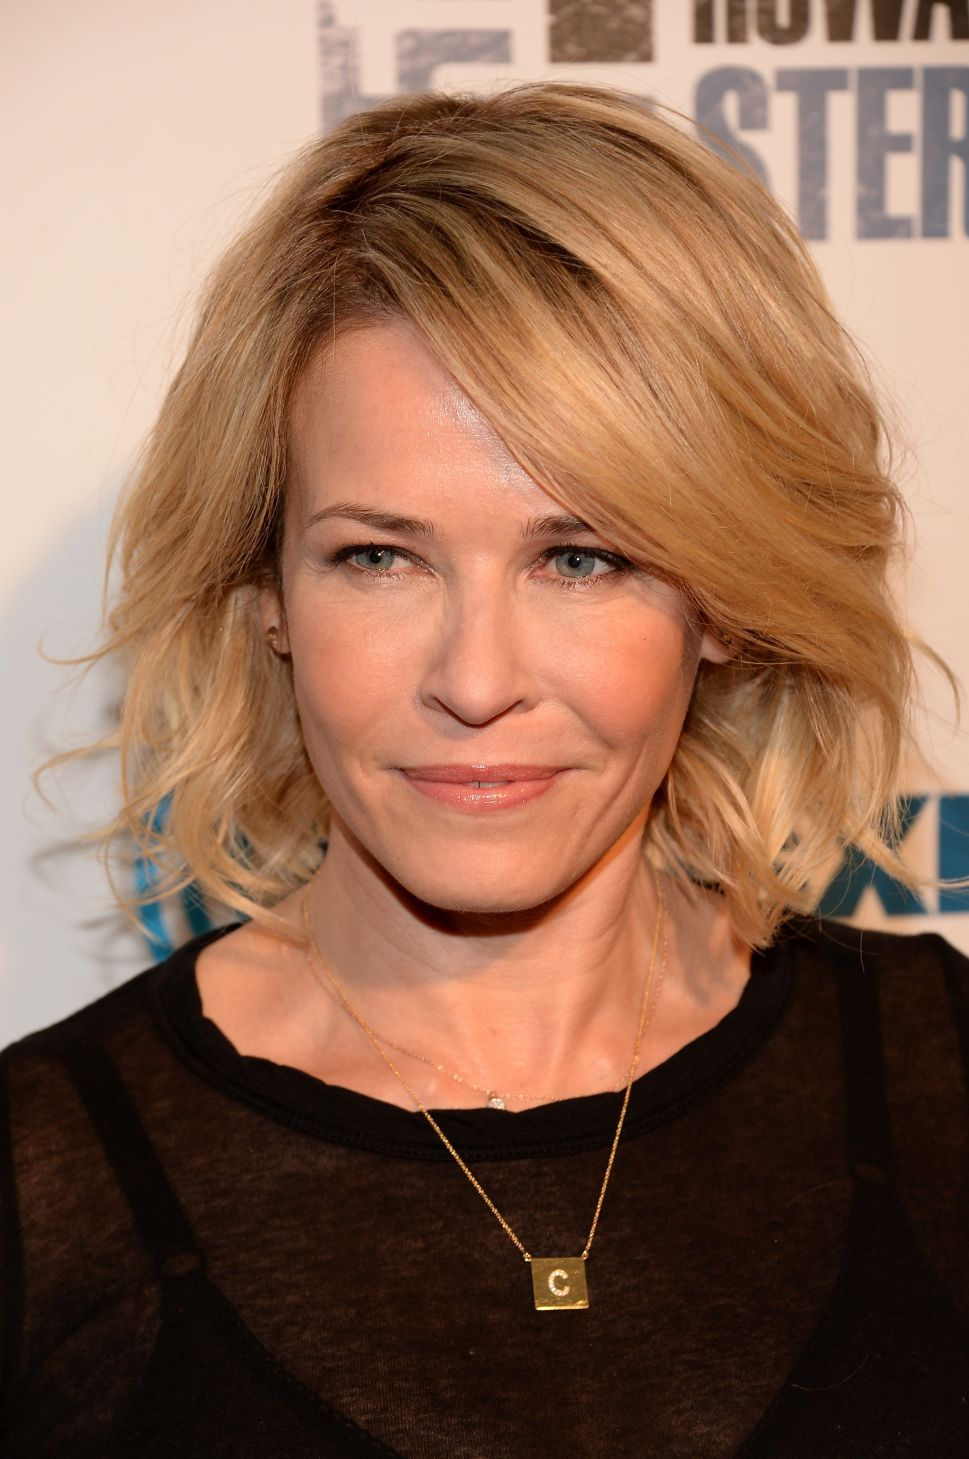 Oh Please, God, Don't Give Another Late Night Show to Chelsea Handler